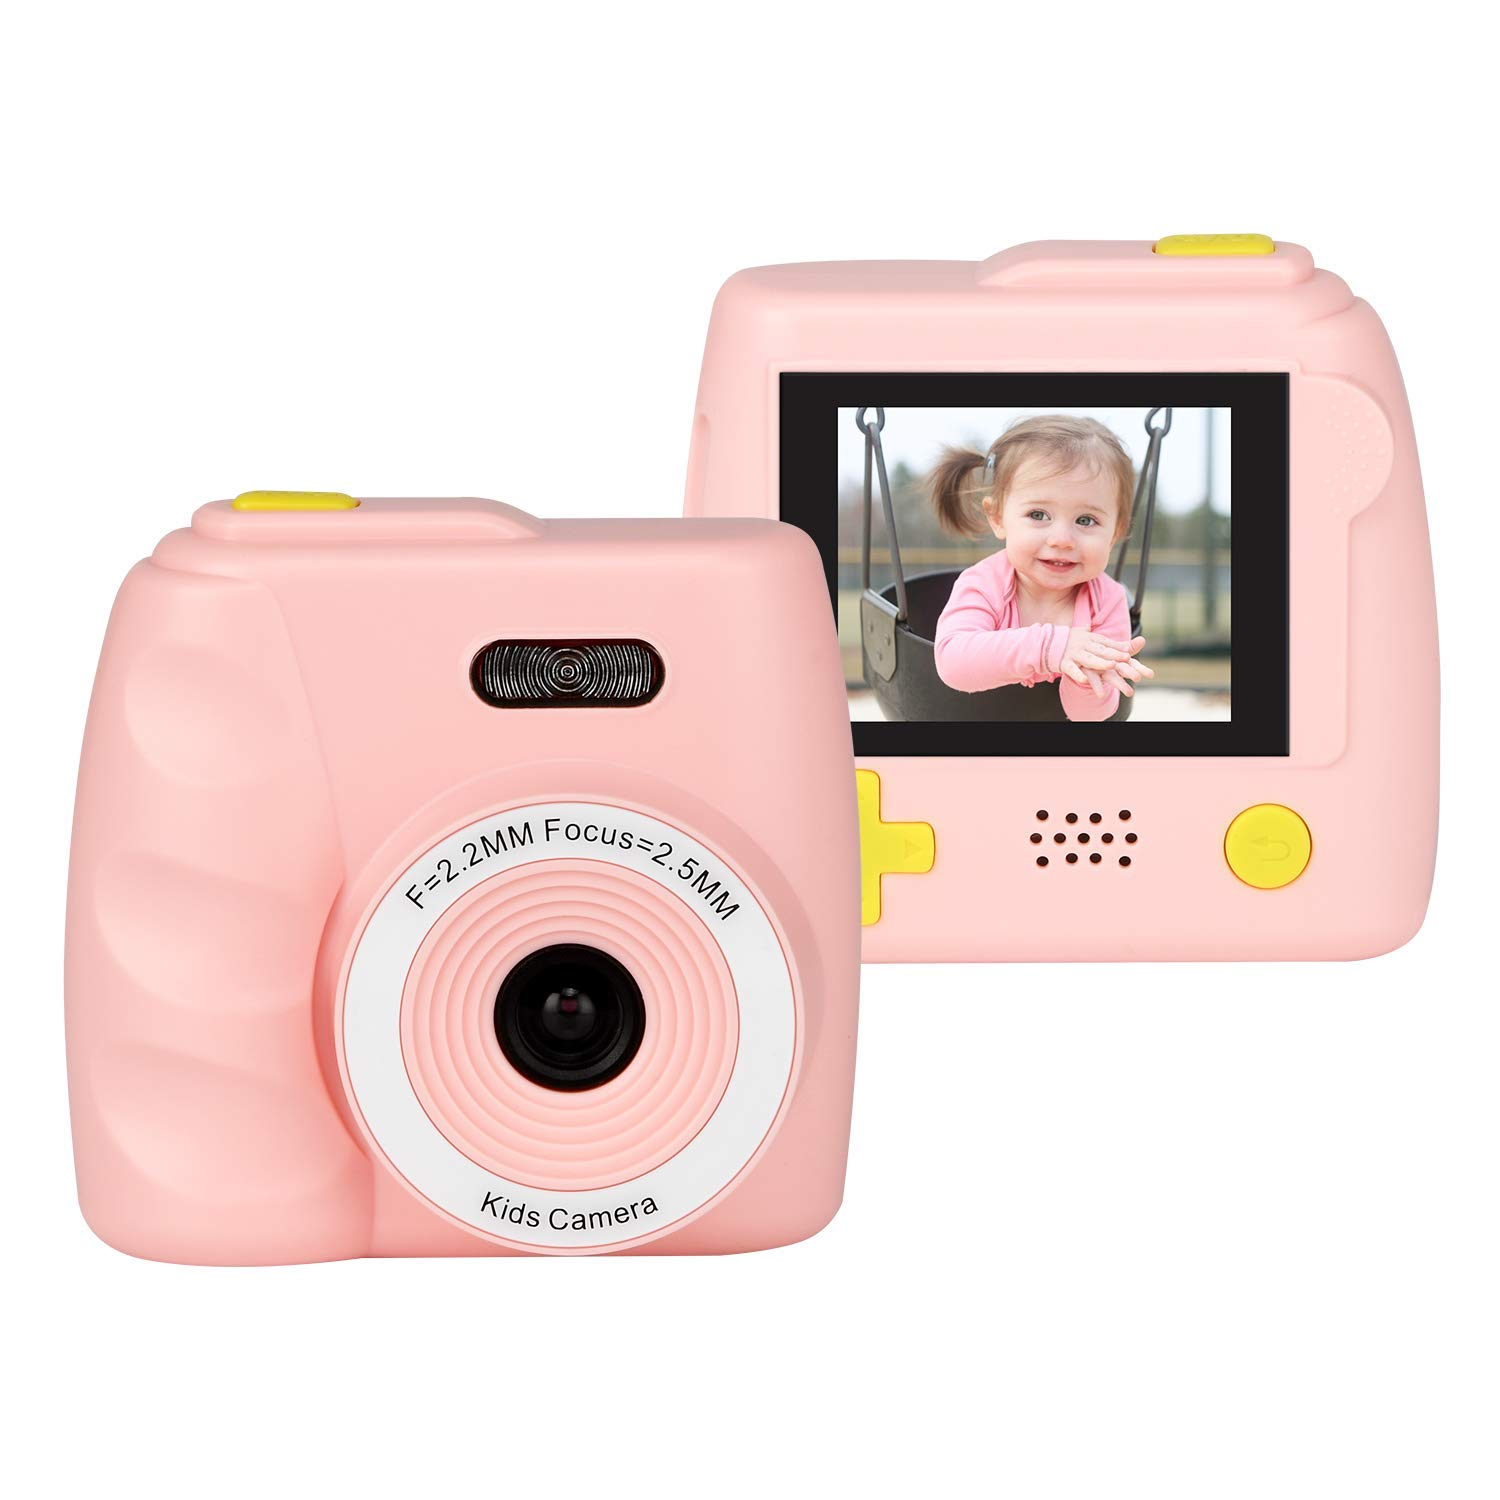 Kids Camera Gifts for 4-8 Year Old boys or girls, Great Gift Mini Child Camcorder for children with Soft Silicone Shell and 5 Mega pixel front lens 2.0 inch HD screen (32G TF card not included) by eyesen (Image #1)